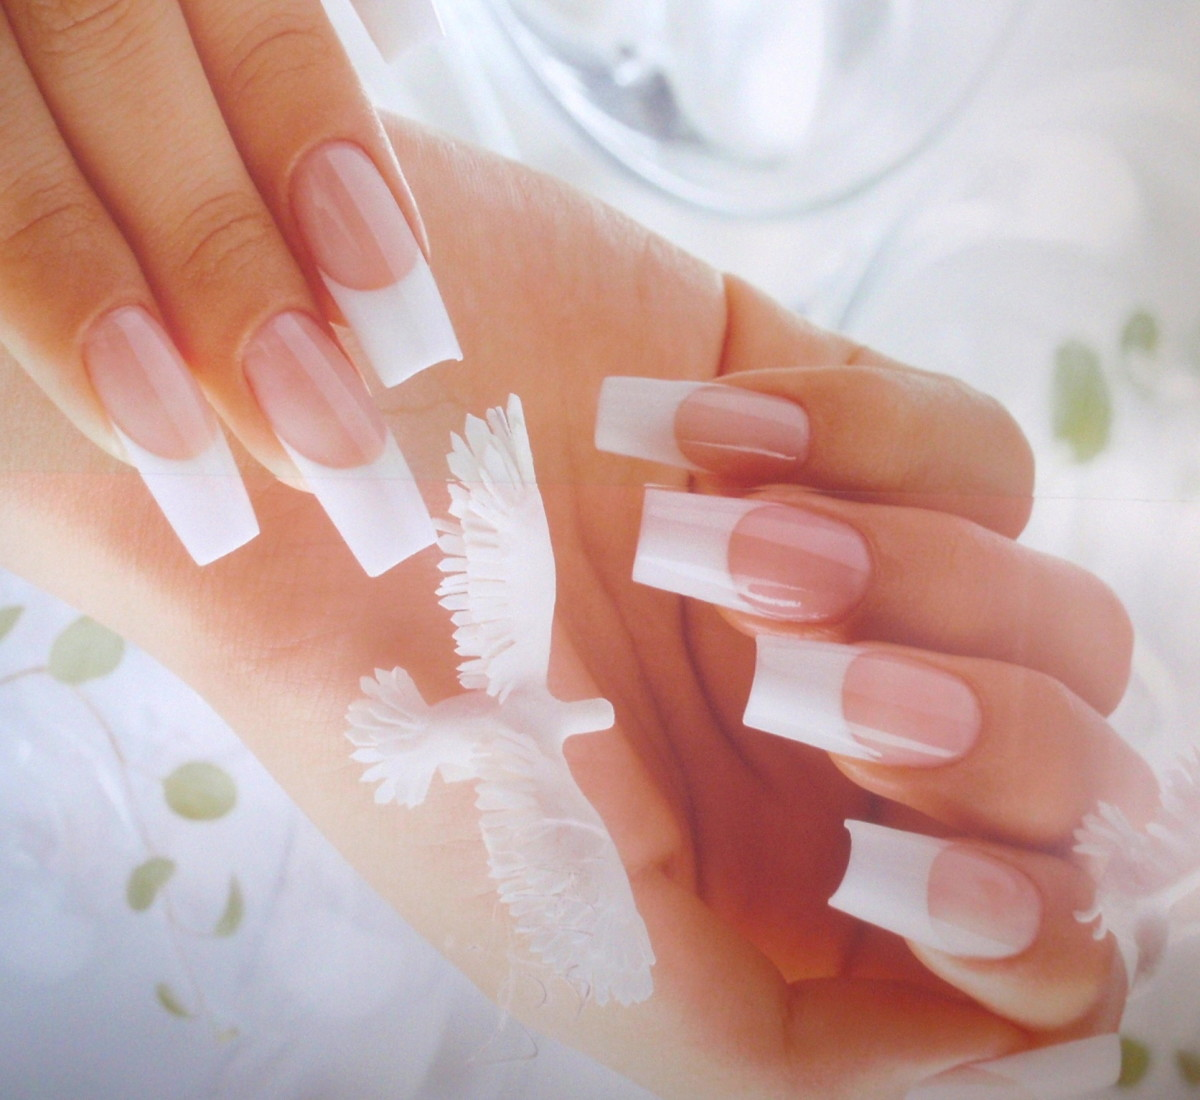 Gel Polish At Home: Perfect French Manicure With Gel Or CND Shellac Nail